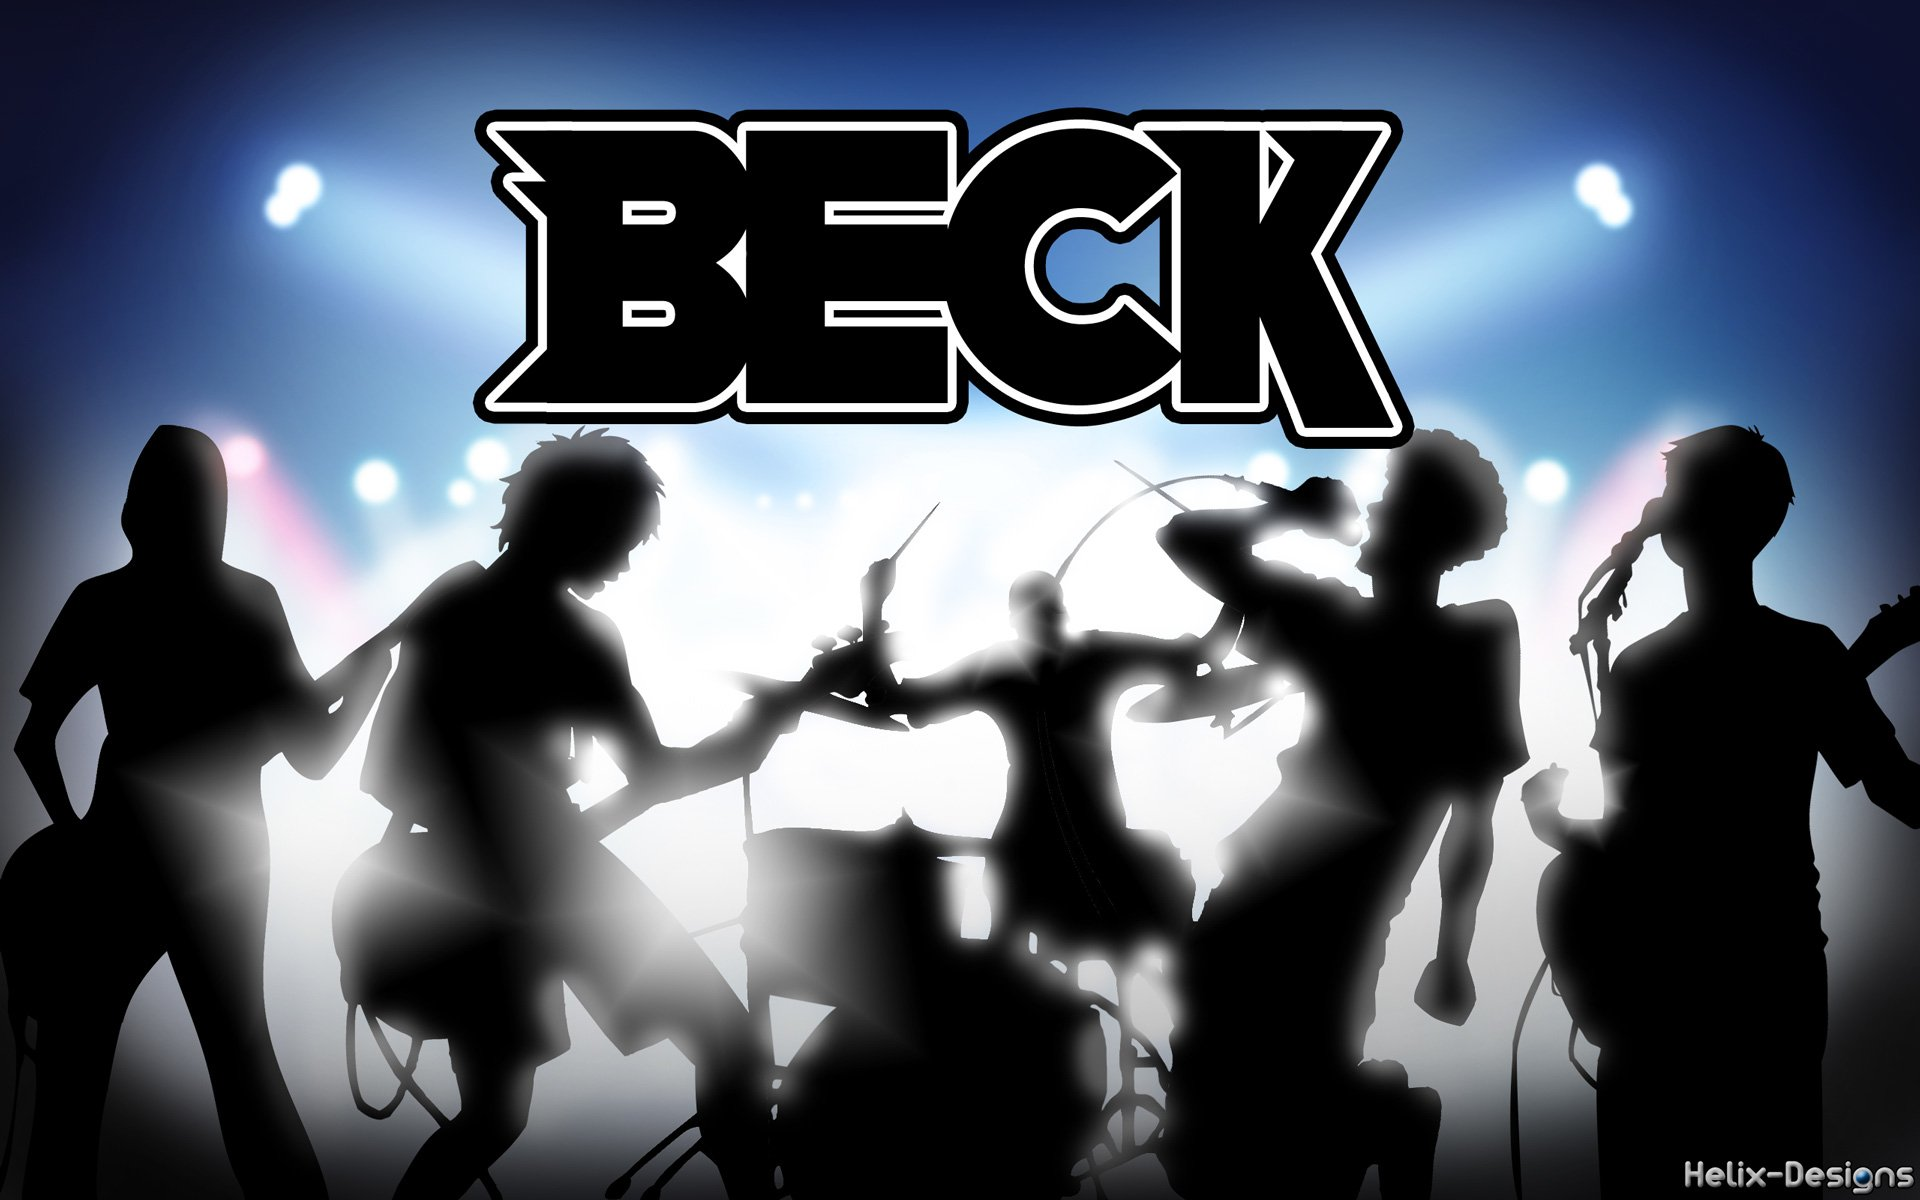 17 Beck Hd Wallpapers Background Images Wallpaper Abyss